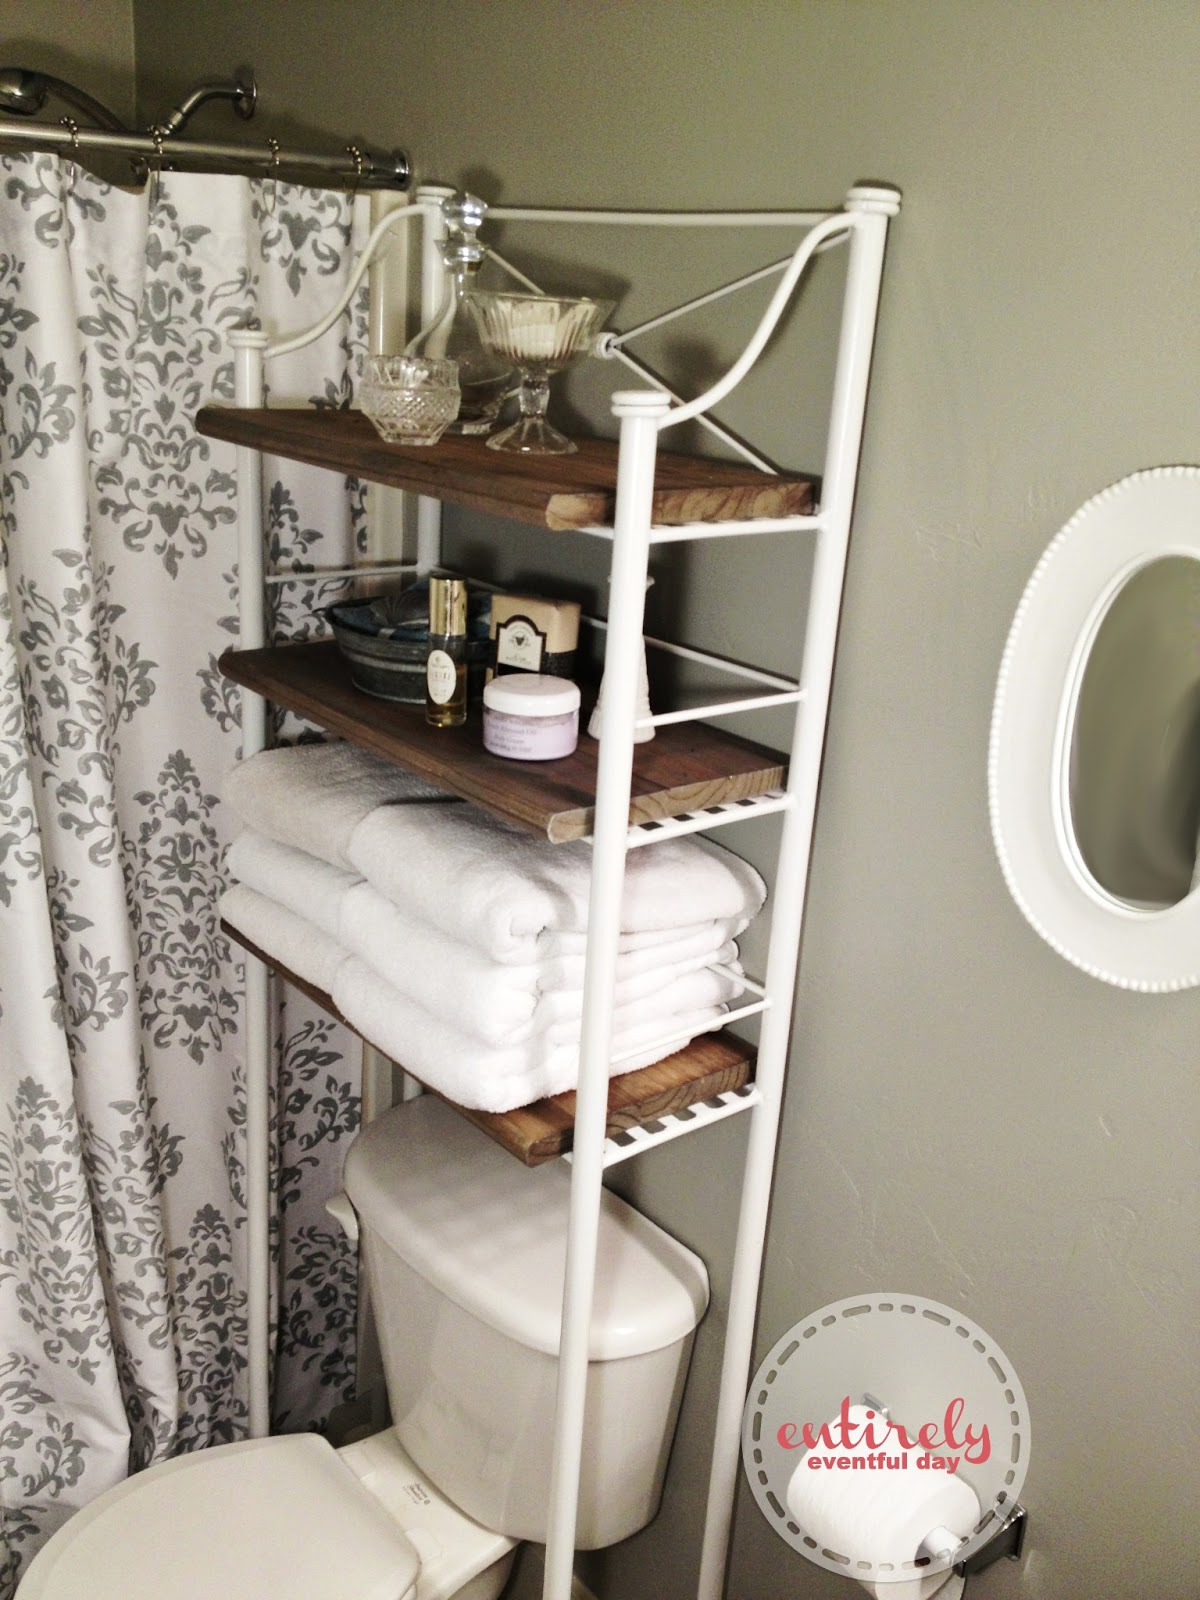 Diy Bathroom Decor Diy Bathroom Shelf Make Over Entirely Eventful Day